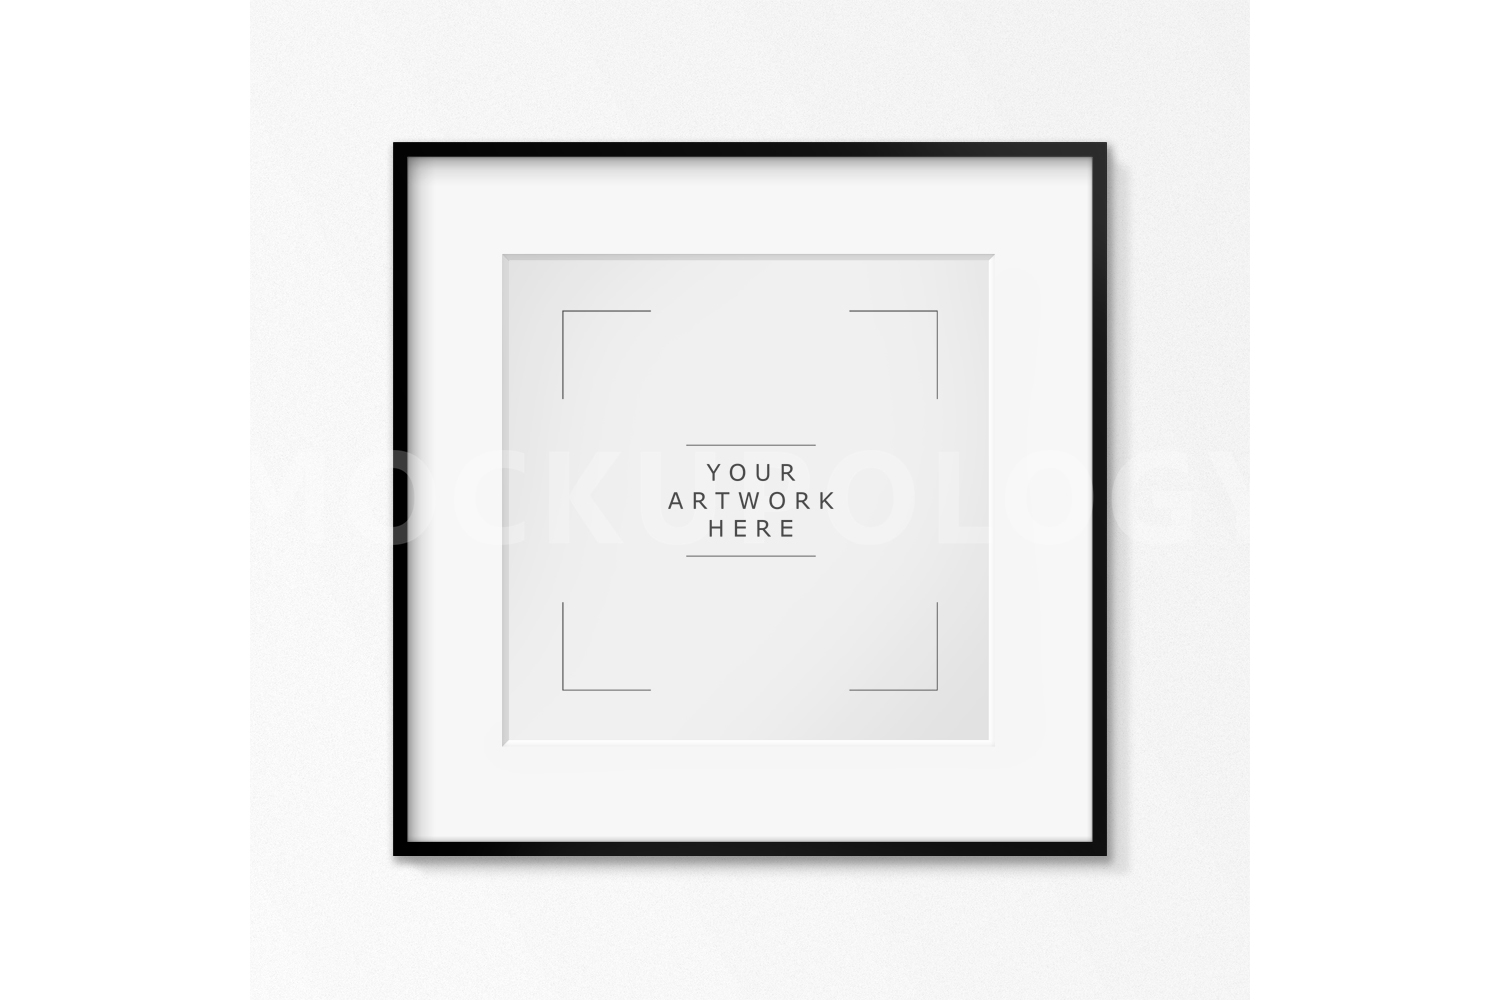 SQUARE Digital Black Frame Mockup, White Wallpaper Background, Styled Photography Poster Mockup, Framed Artwork Mockup, INSTANT DOWNLOAD example image 1